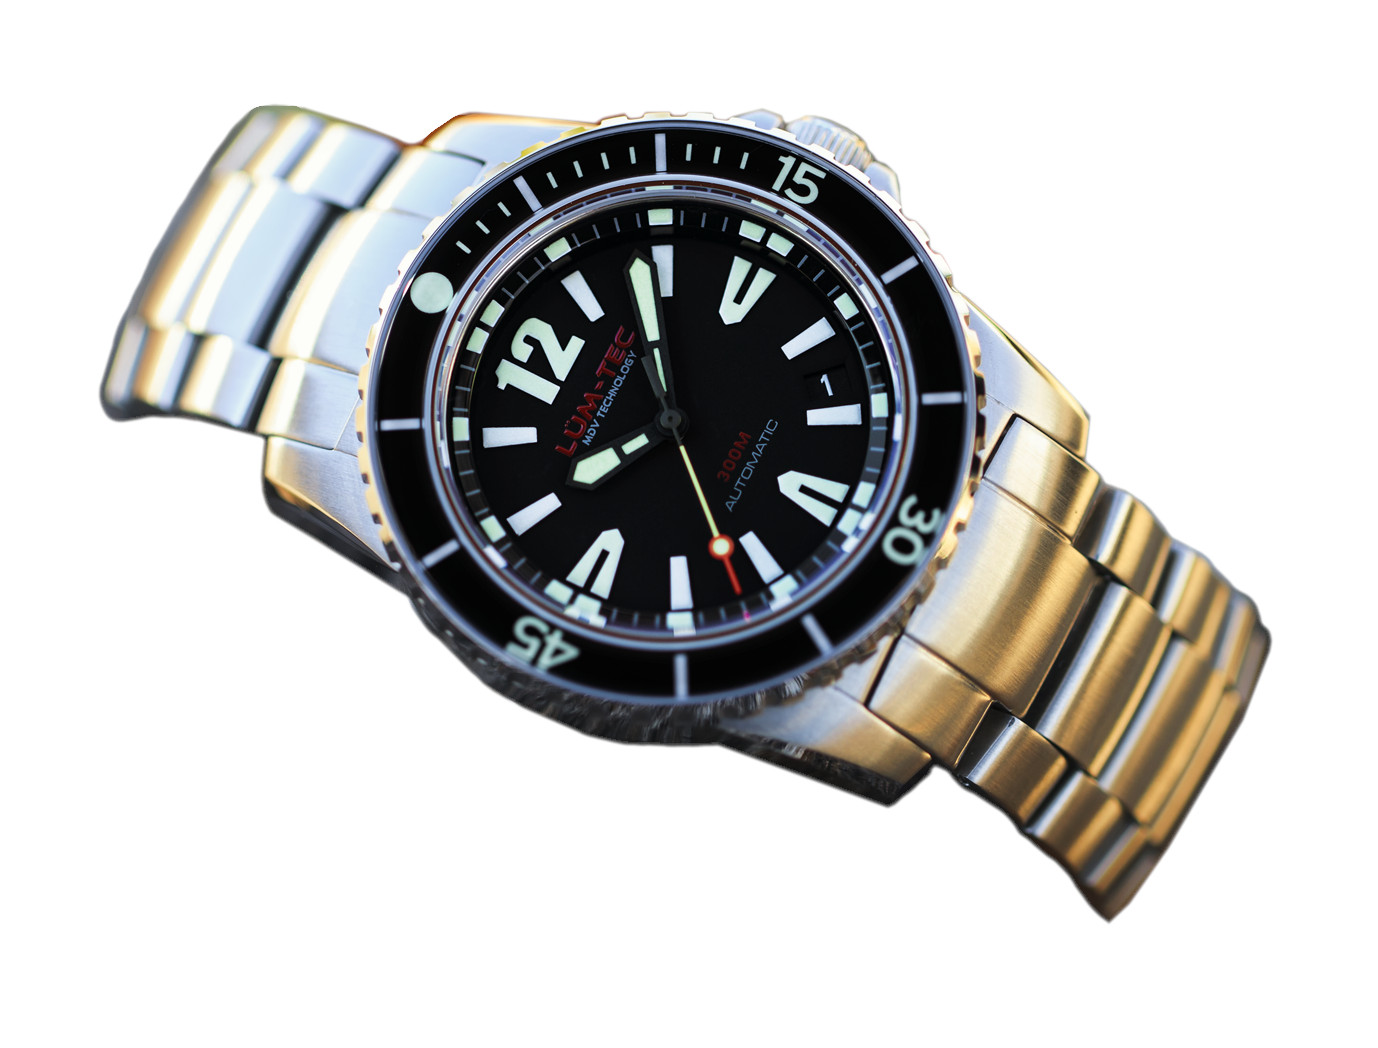 Lum-Tec 300M-1 Men Watch 40mm Automatic Diver Stainless Steel Two Straps 300m WR